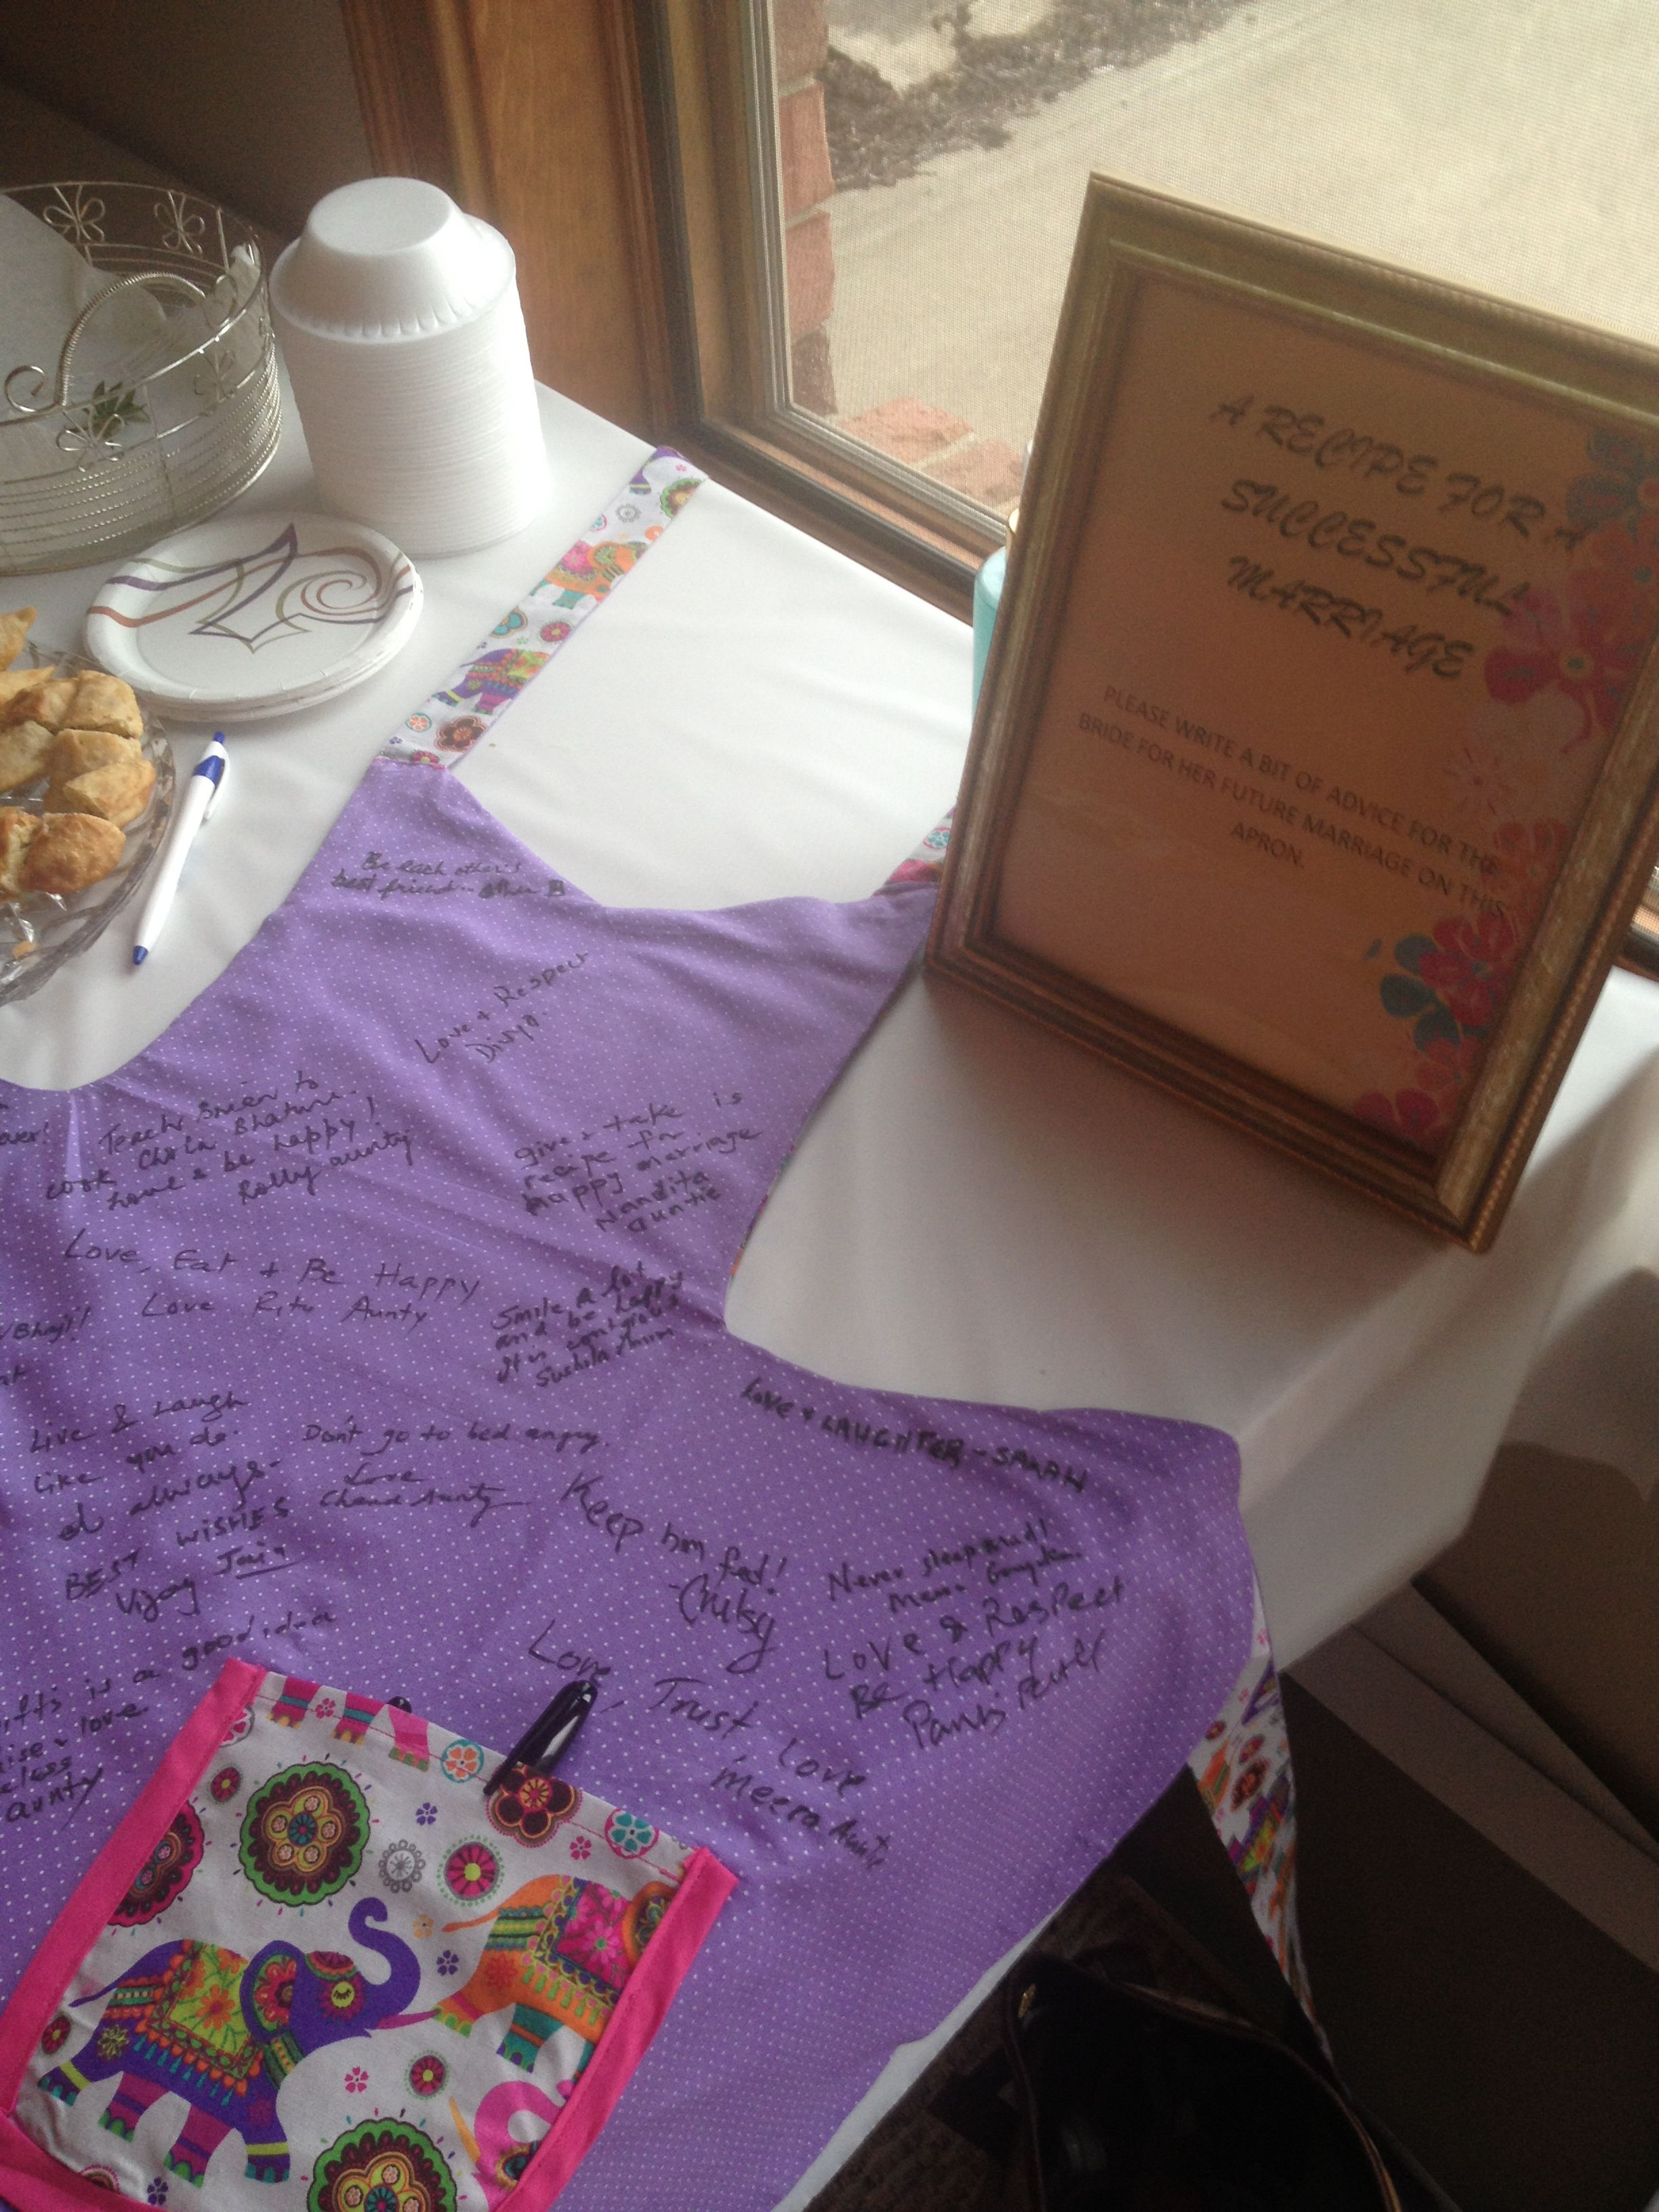 bridal shower guestbook apron makebuy an apron for all the women to sign and write advice to the bride bridalshower